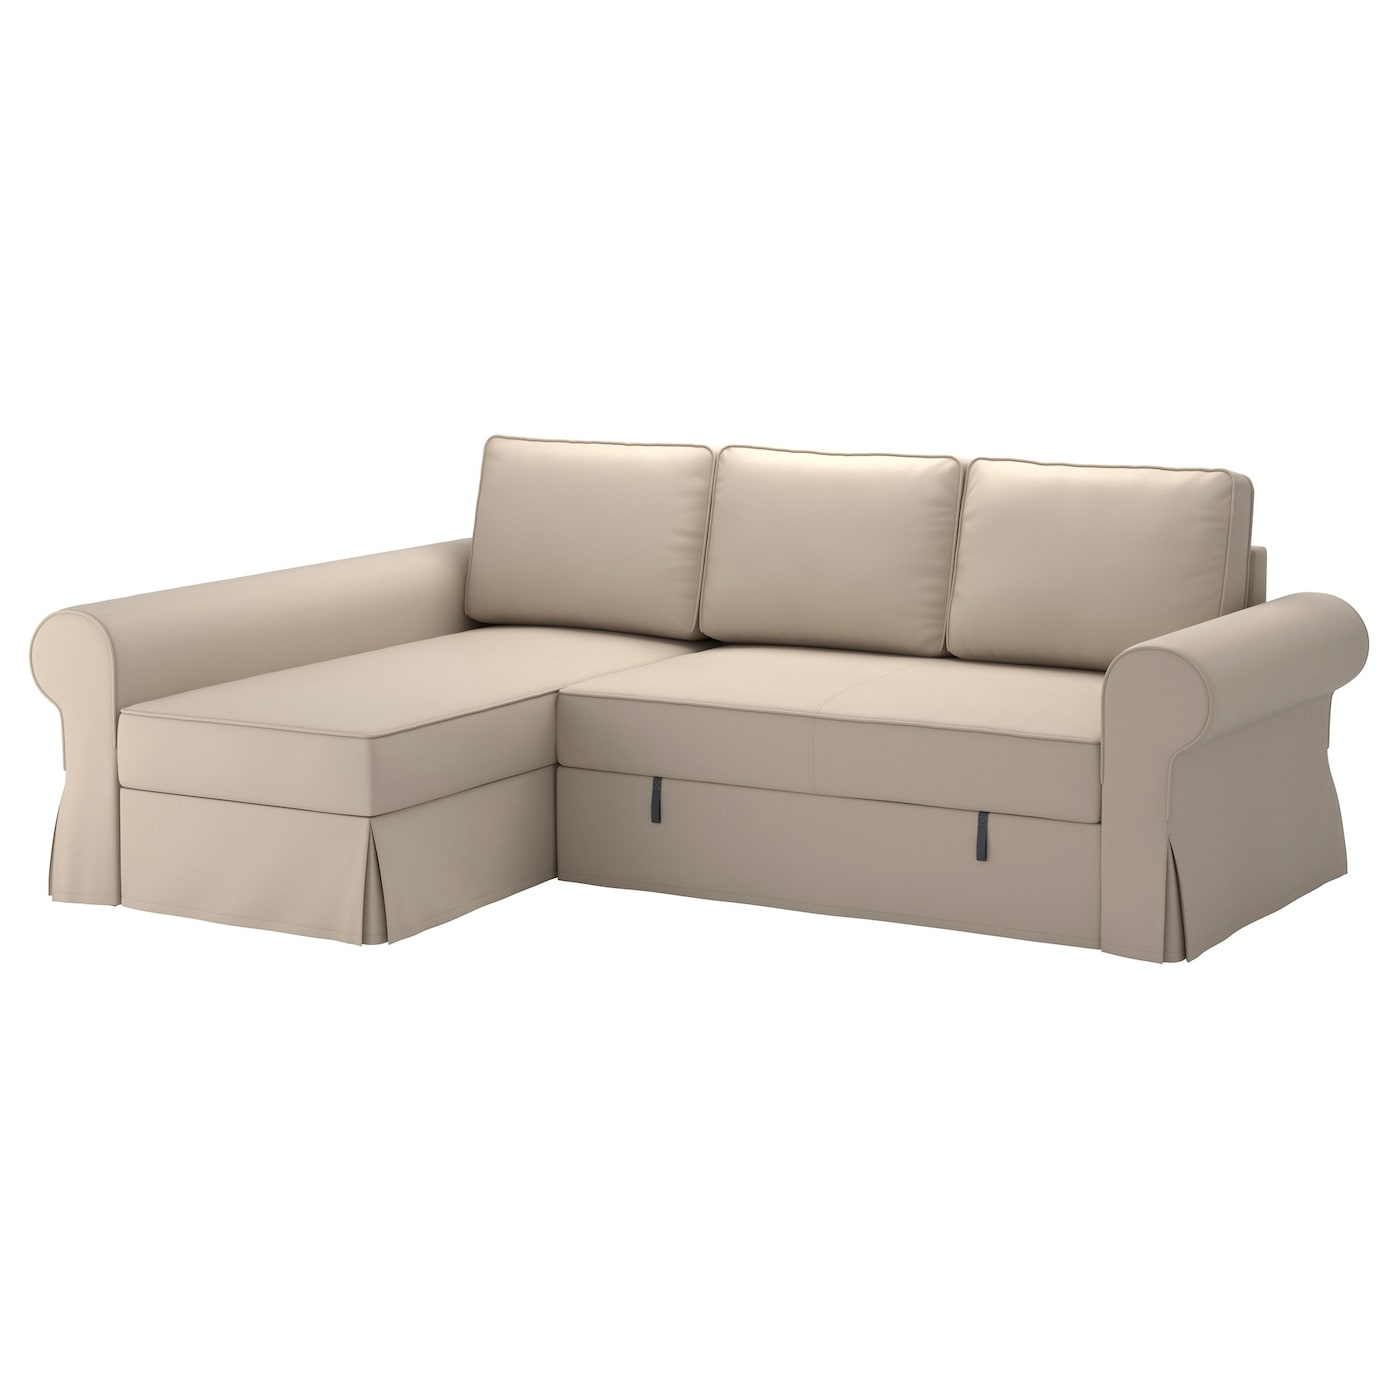 IKEA BACKABRO Sofa Bed With Chaise Longue Readily Converts Into A Bed.